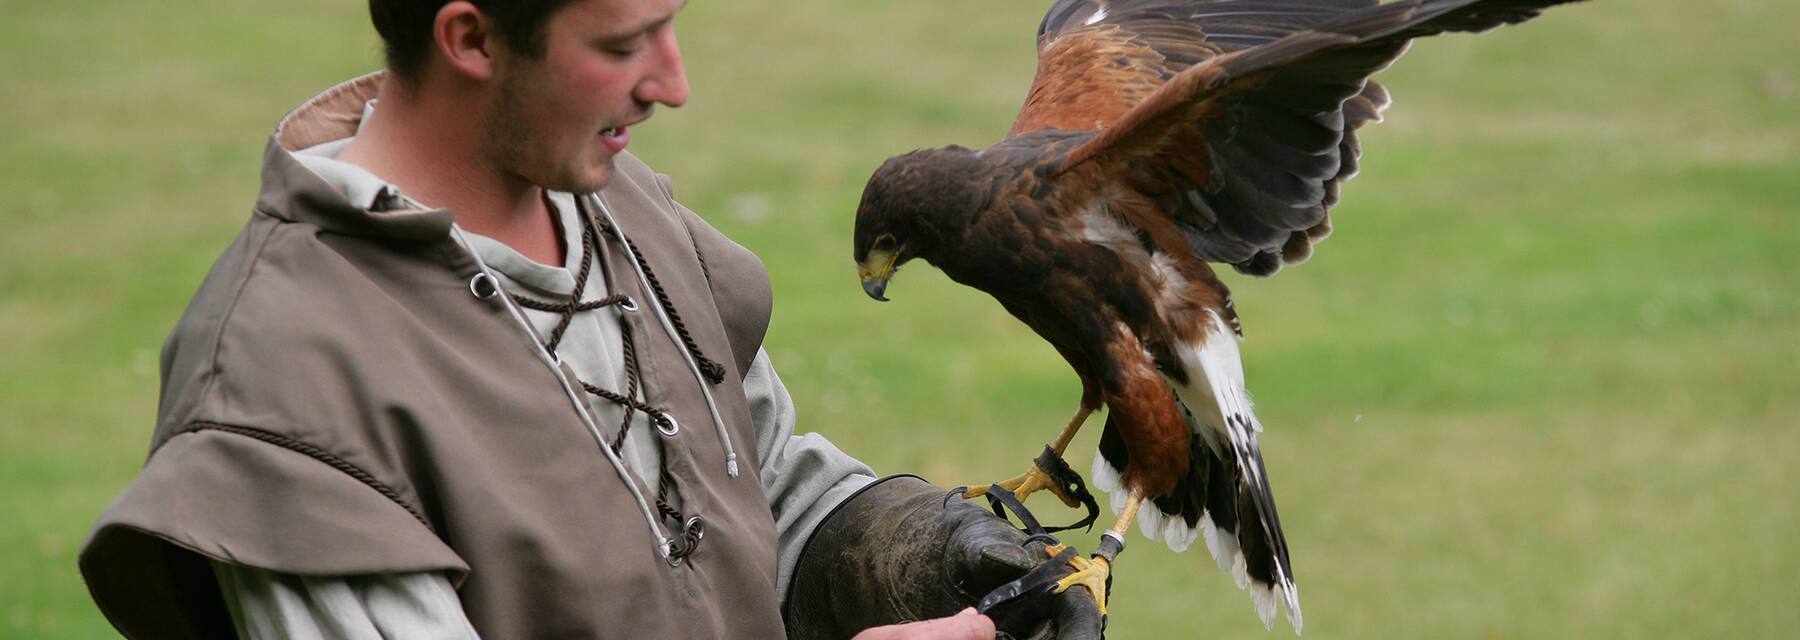 Falconry at Falkland Palace